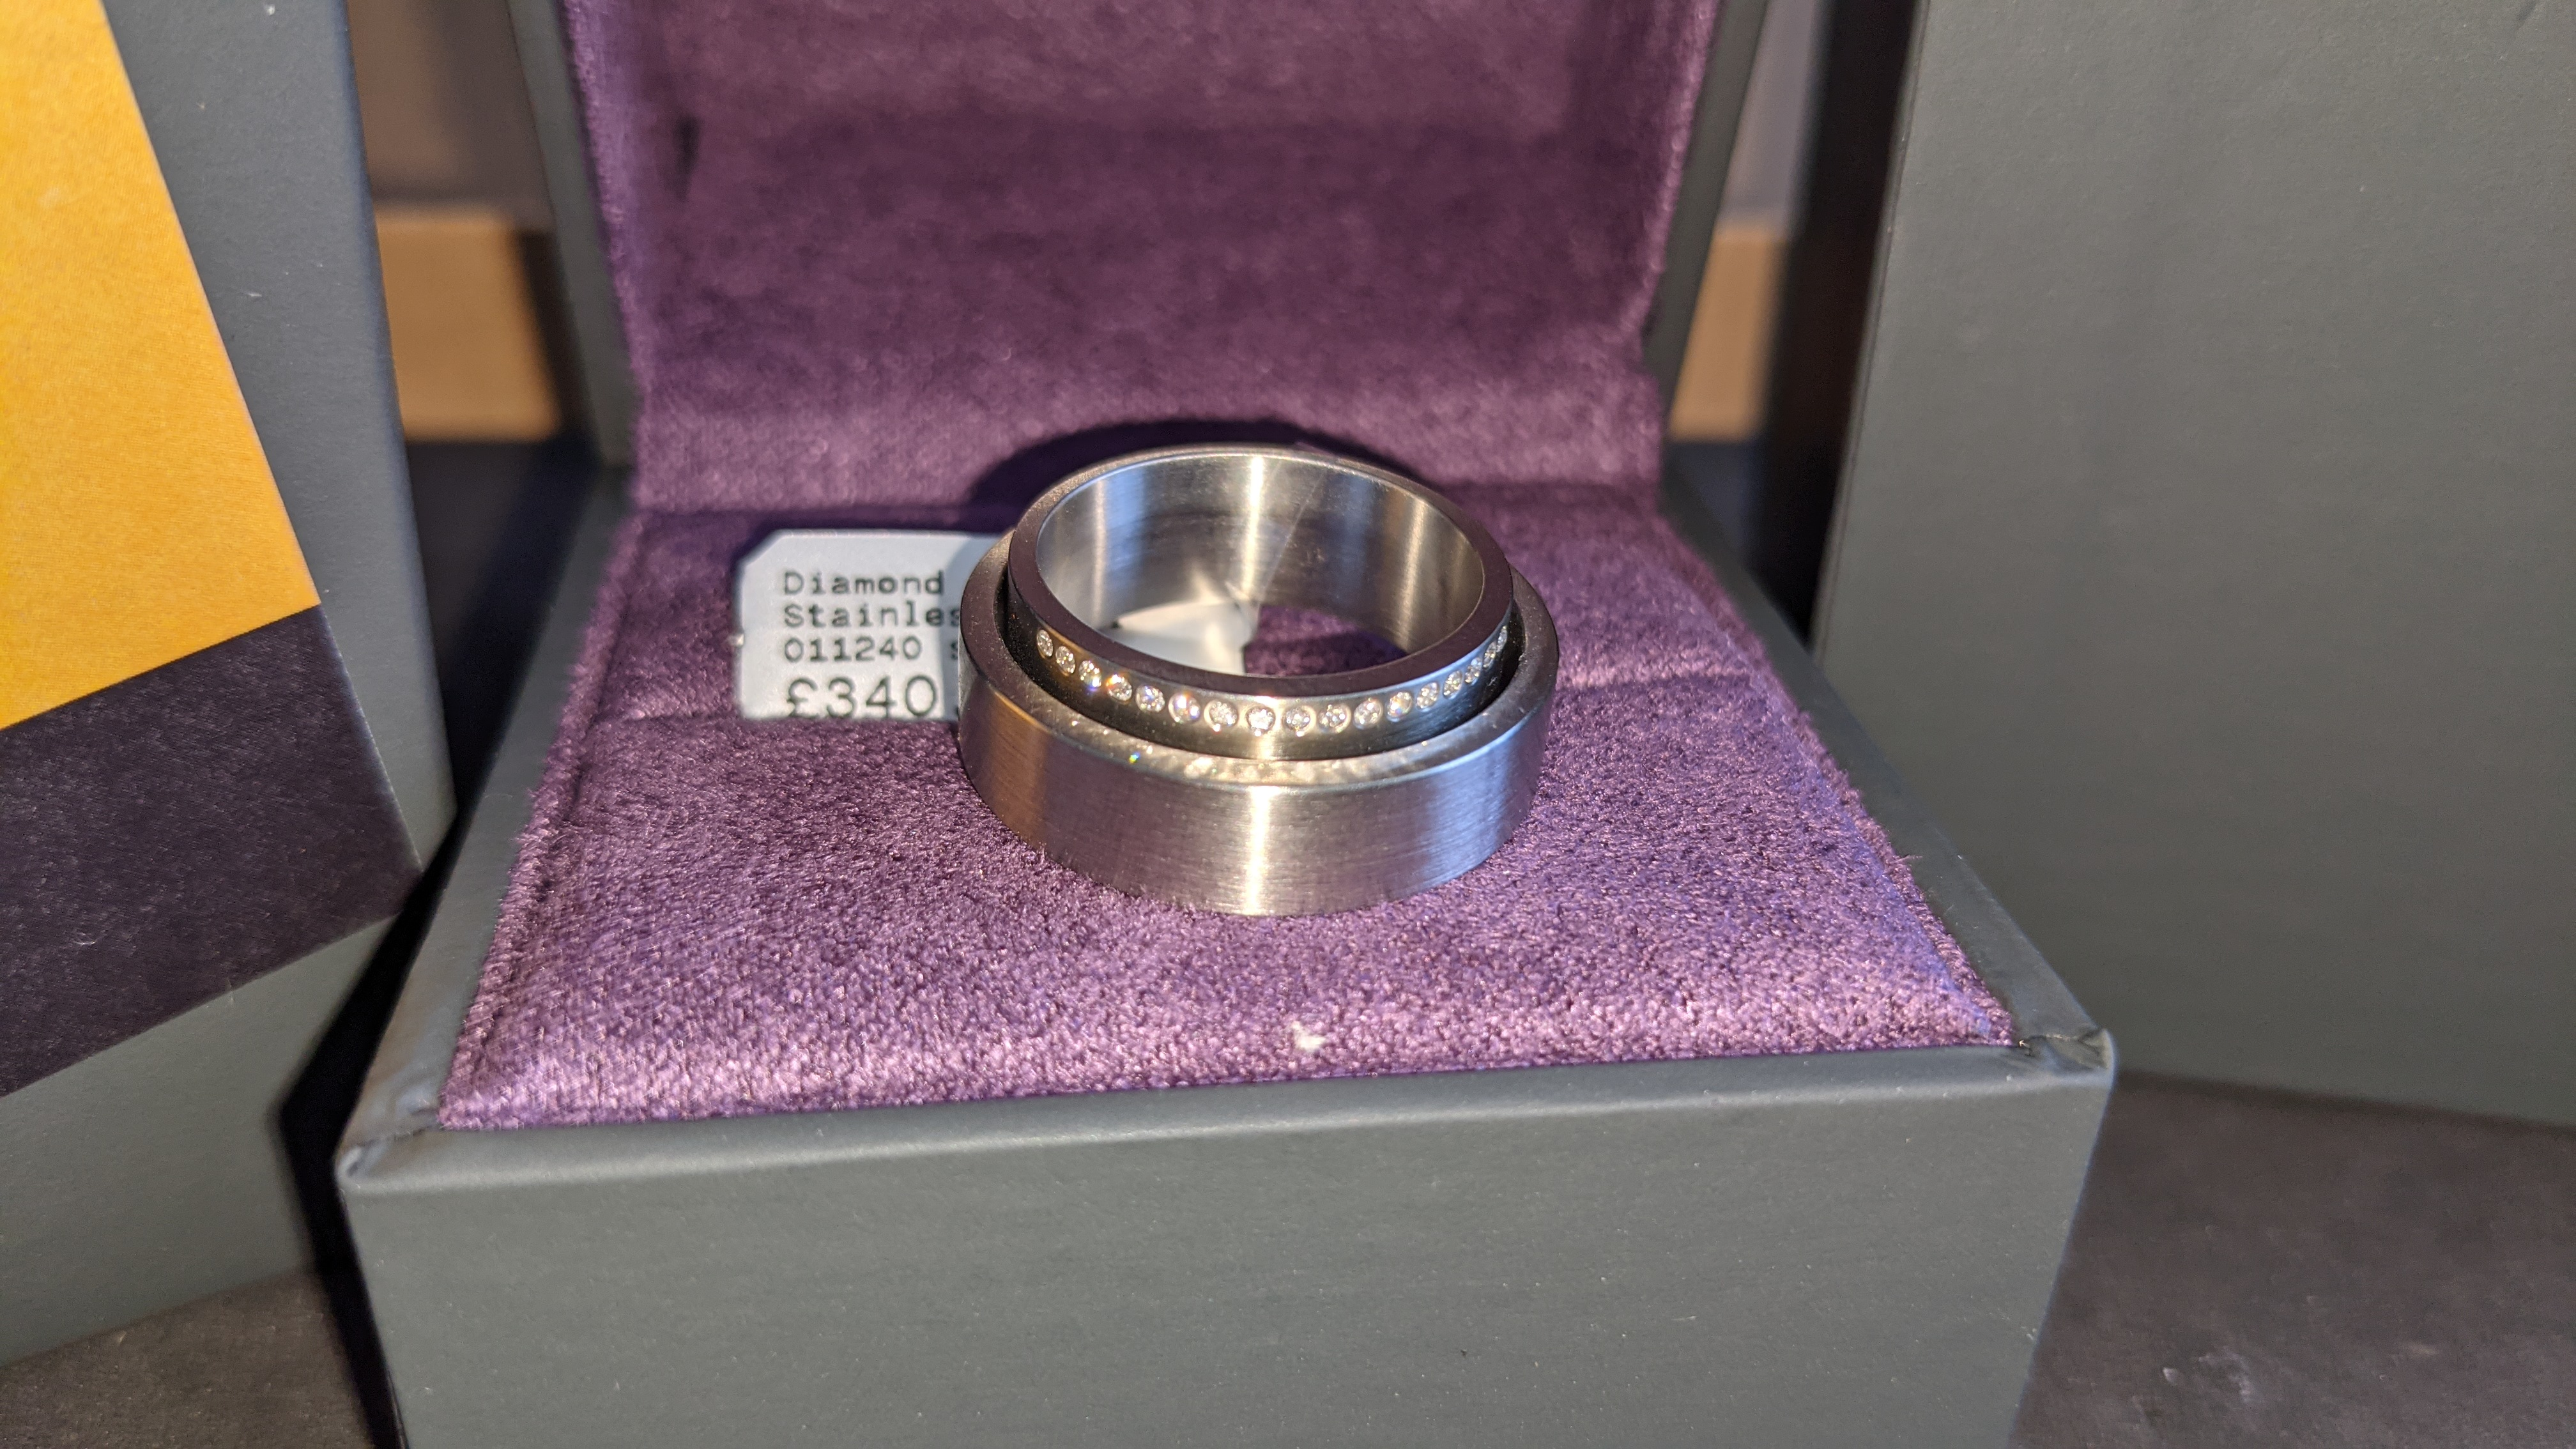 Stainless steel & diamond unusually shaped ring with inner & outer circles joined on one side, RRP £ - Image 4 of 11